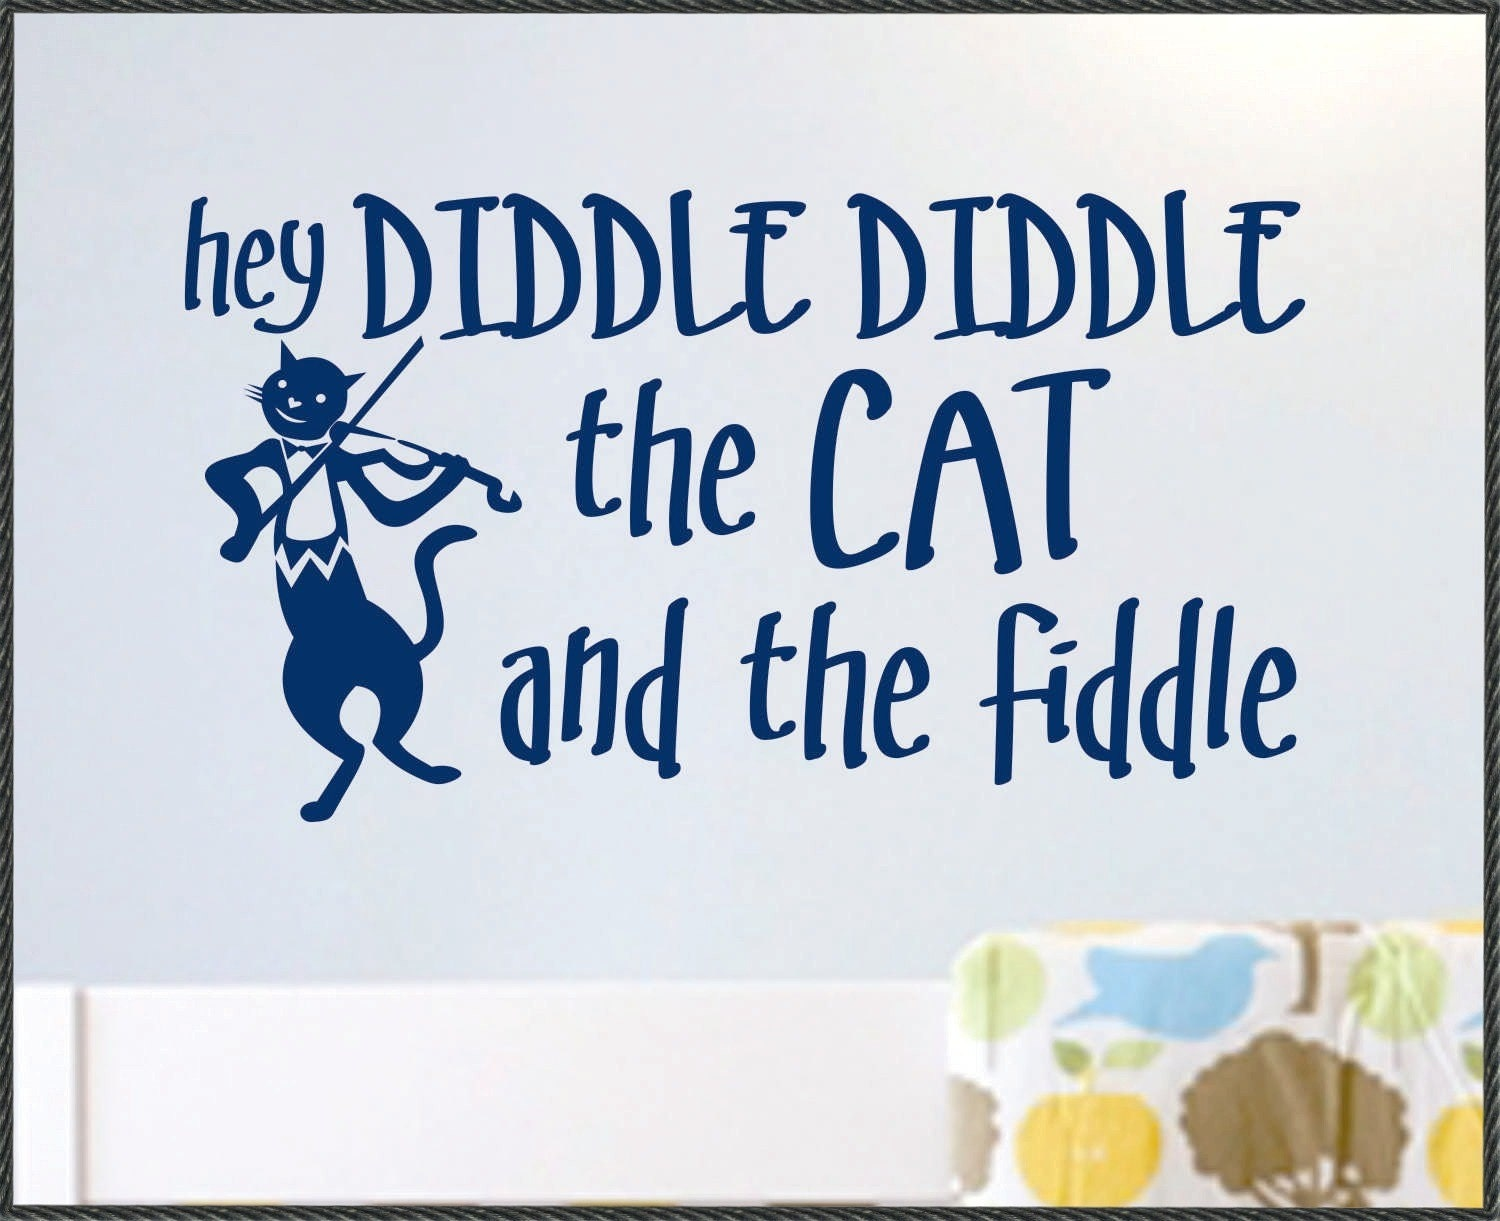 Nursery Rhyme Wall Quote Hey Diddle Diddle